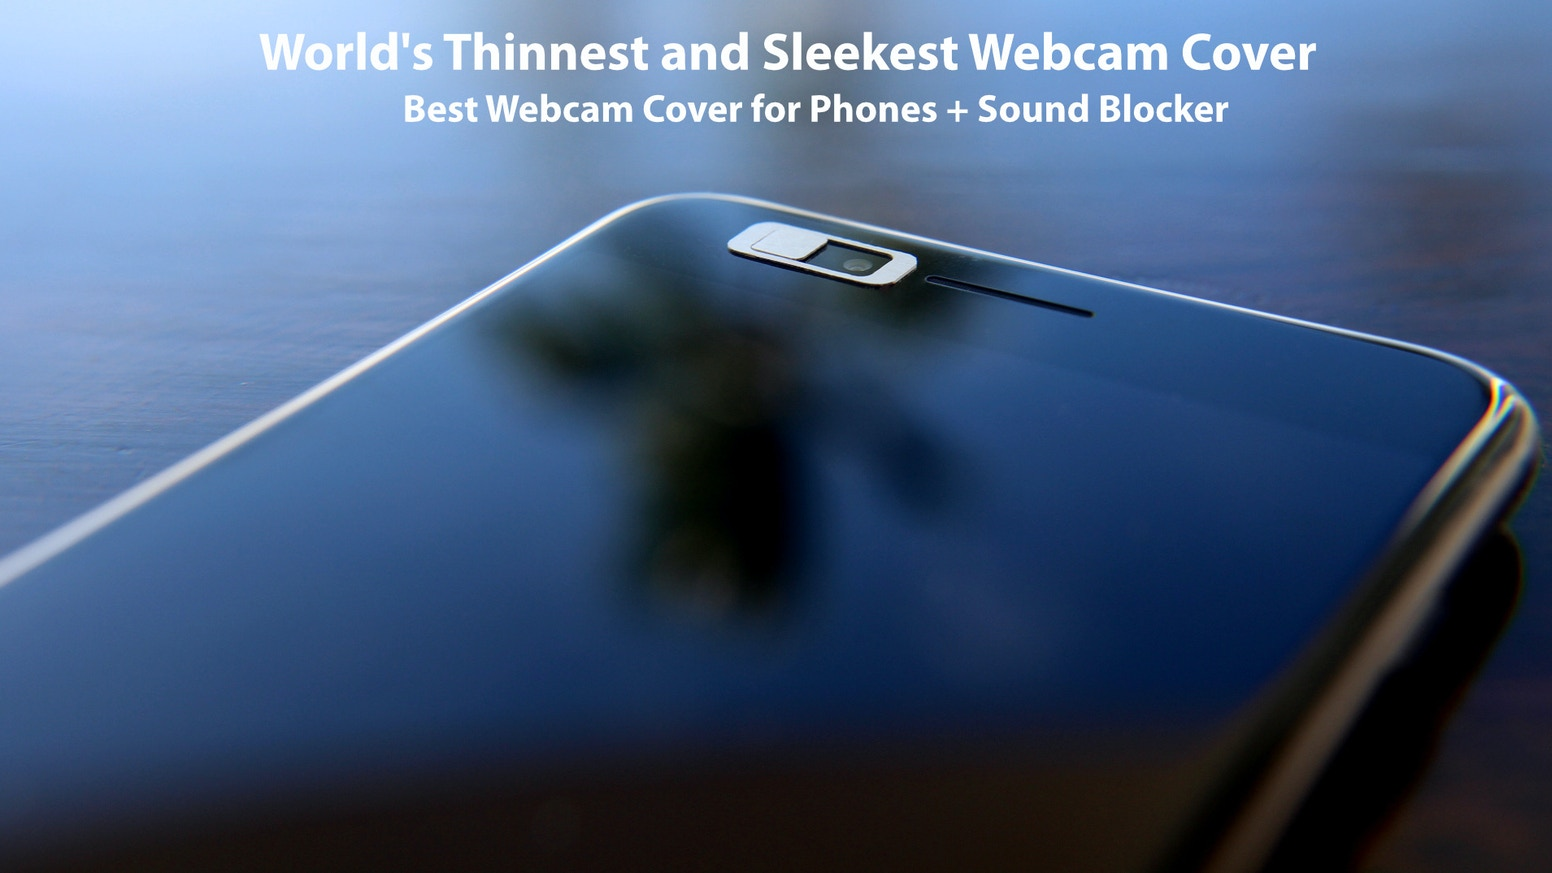 Protect your conversational and visual privacy. World's thinnest and sleekest mechanical webcam cover + sound blocker.